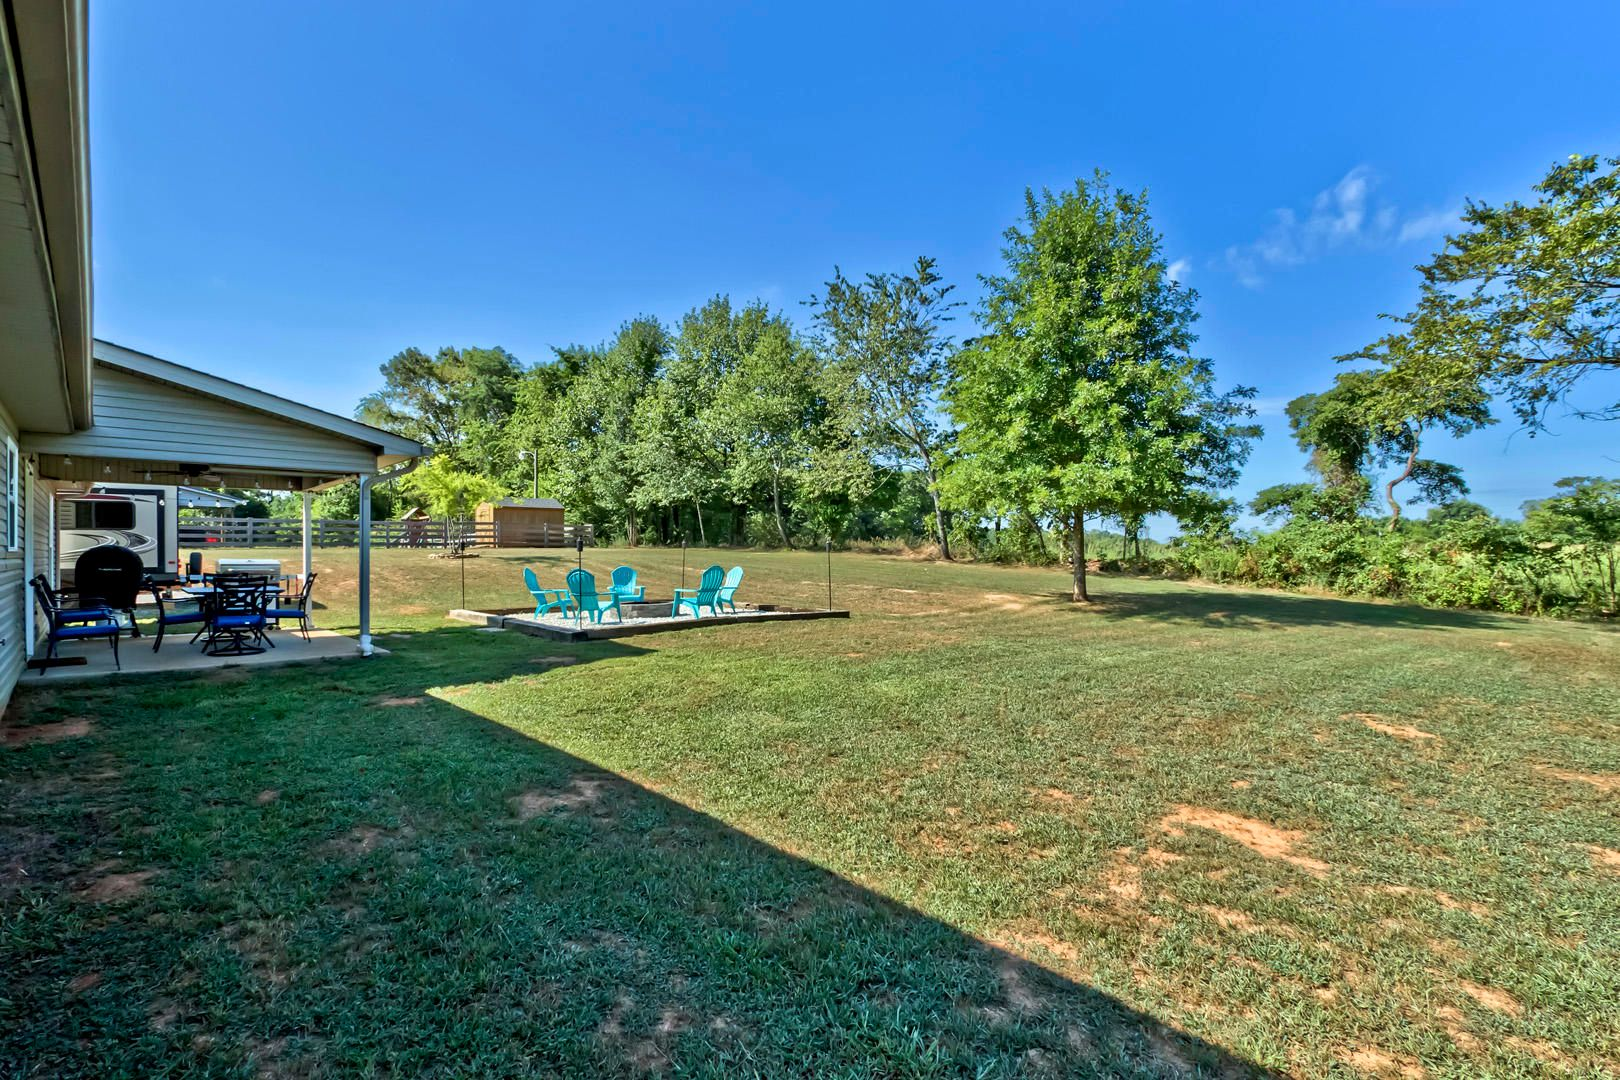 33_PuttersGreenLane_241_Backyard02